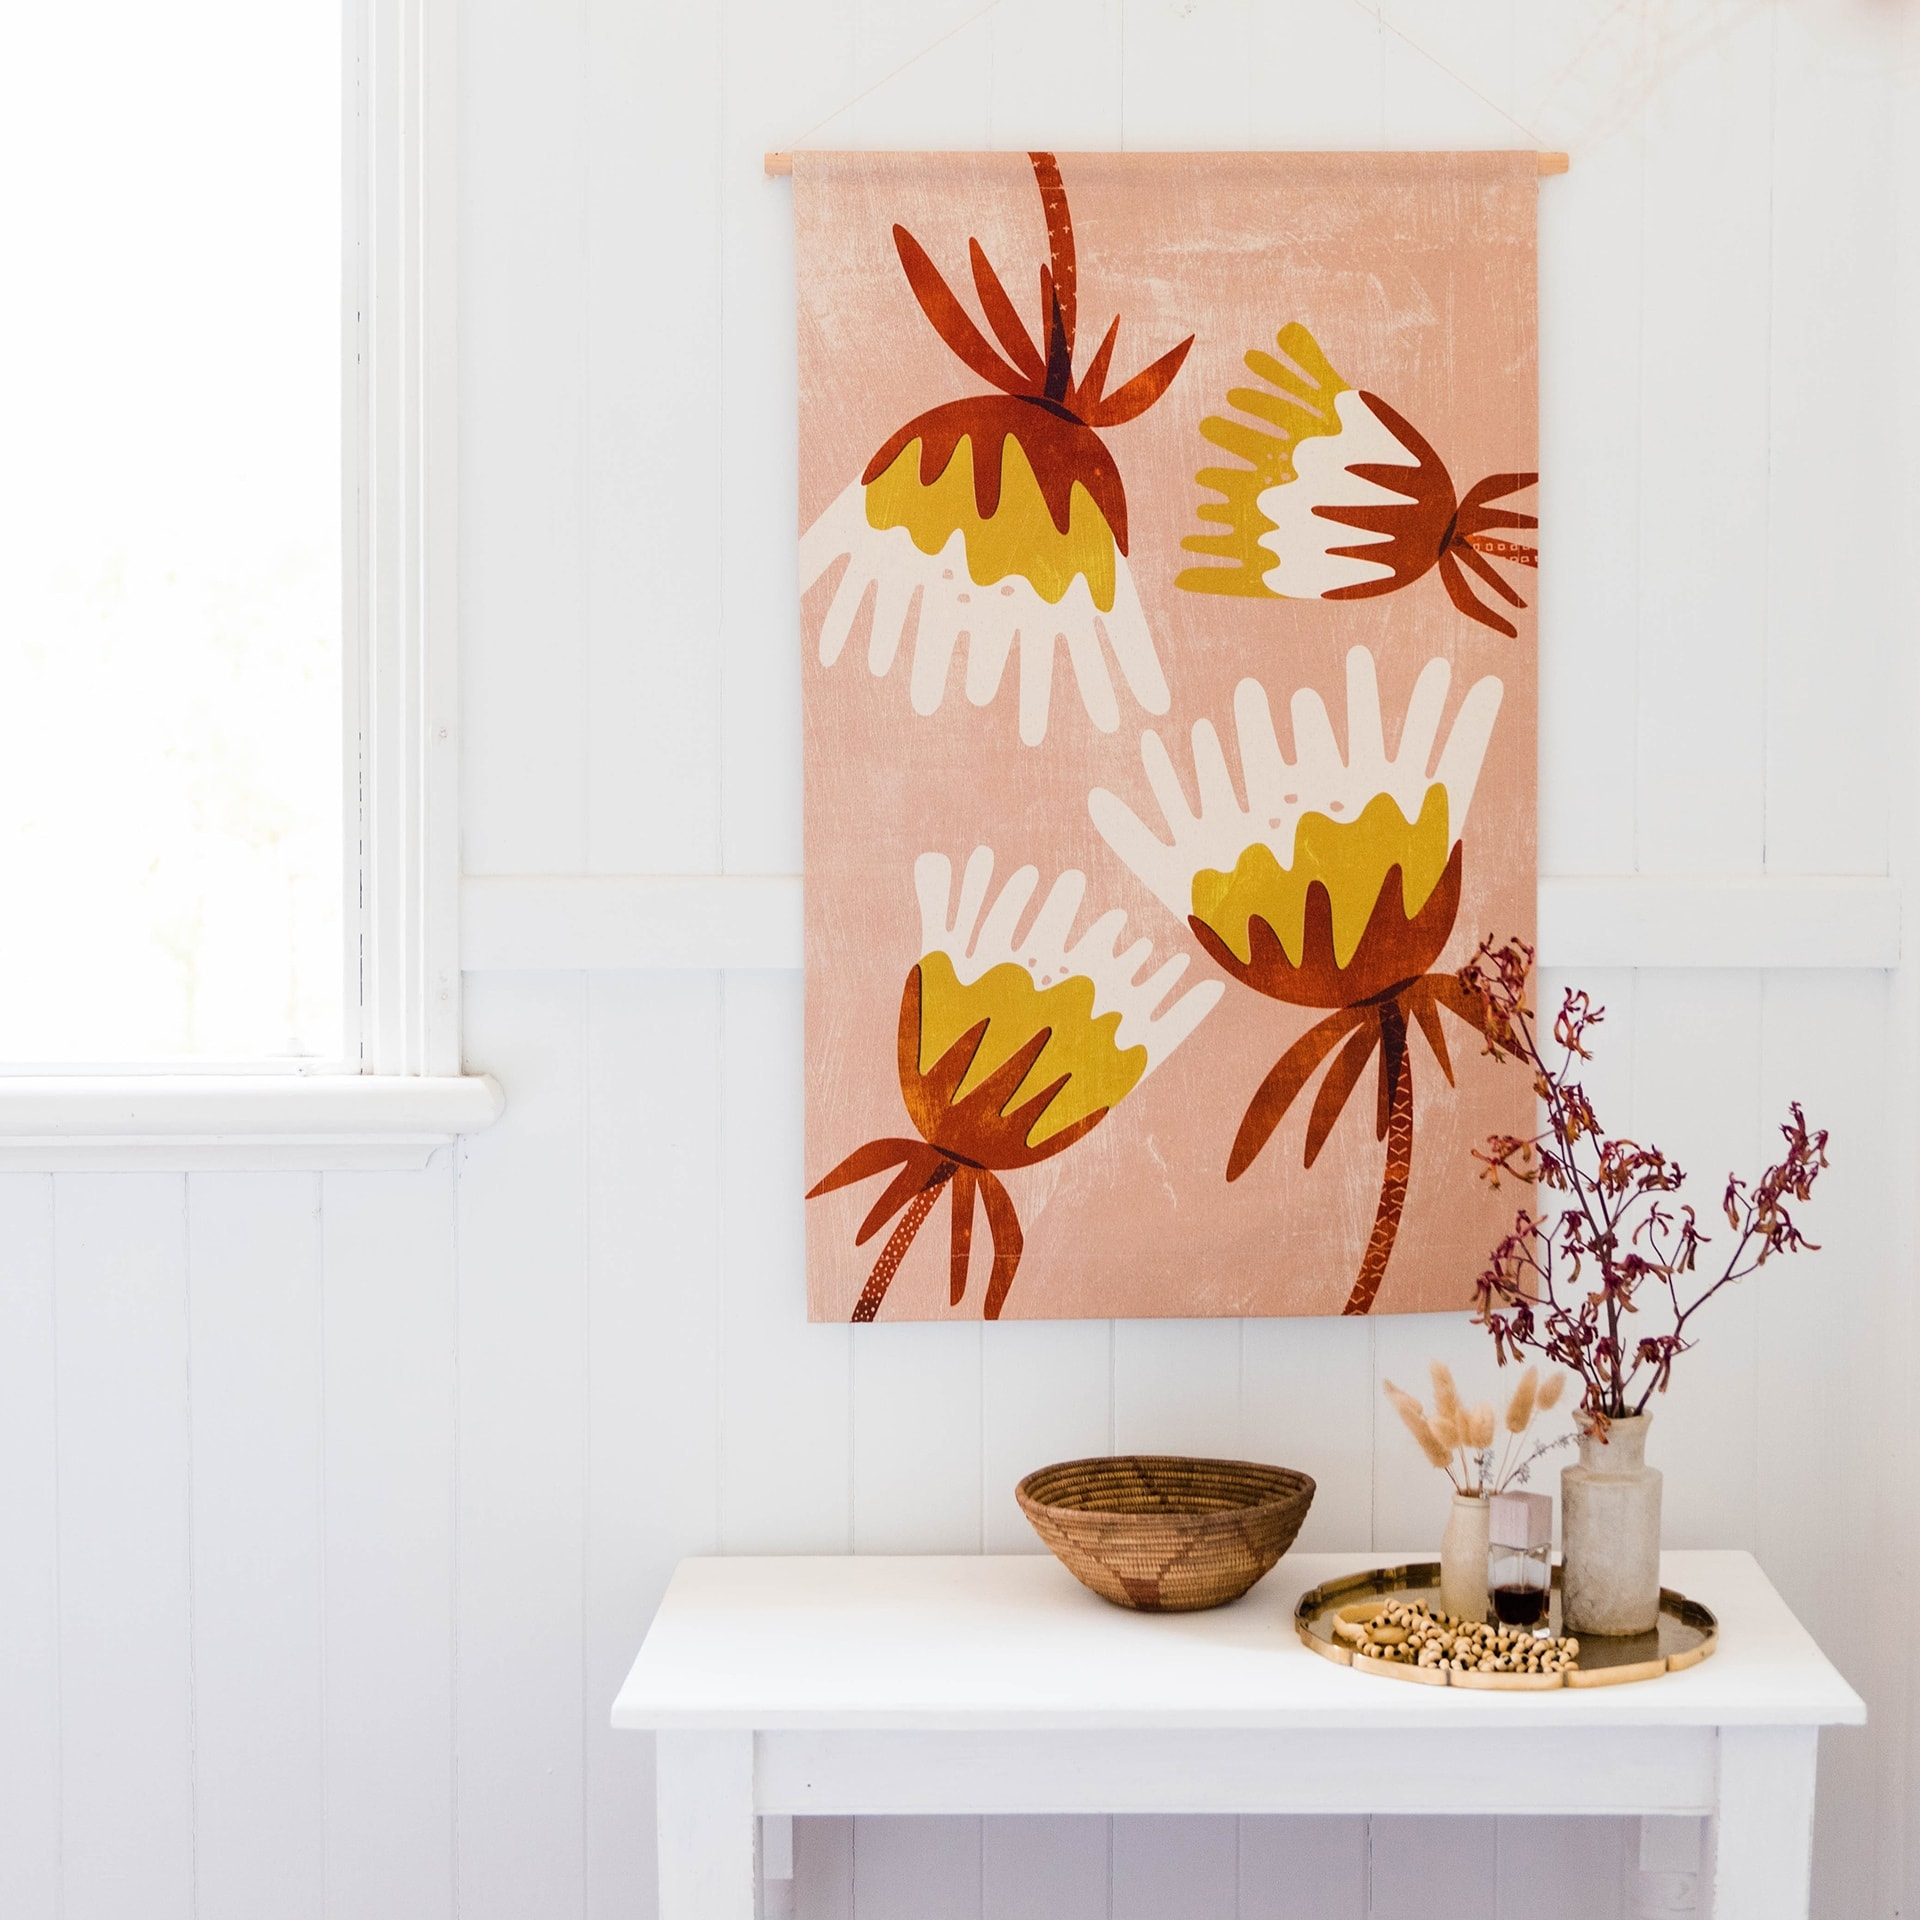 Fabric Wall Hangings Trend & Where To Shop It – Tlc Interiors Within 2017 Blended Fabric Poppy Red Wall Hangings (View 6 of 20)